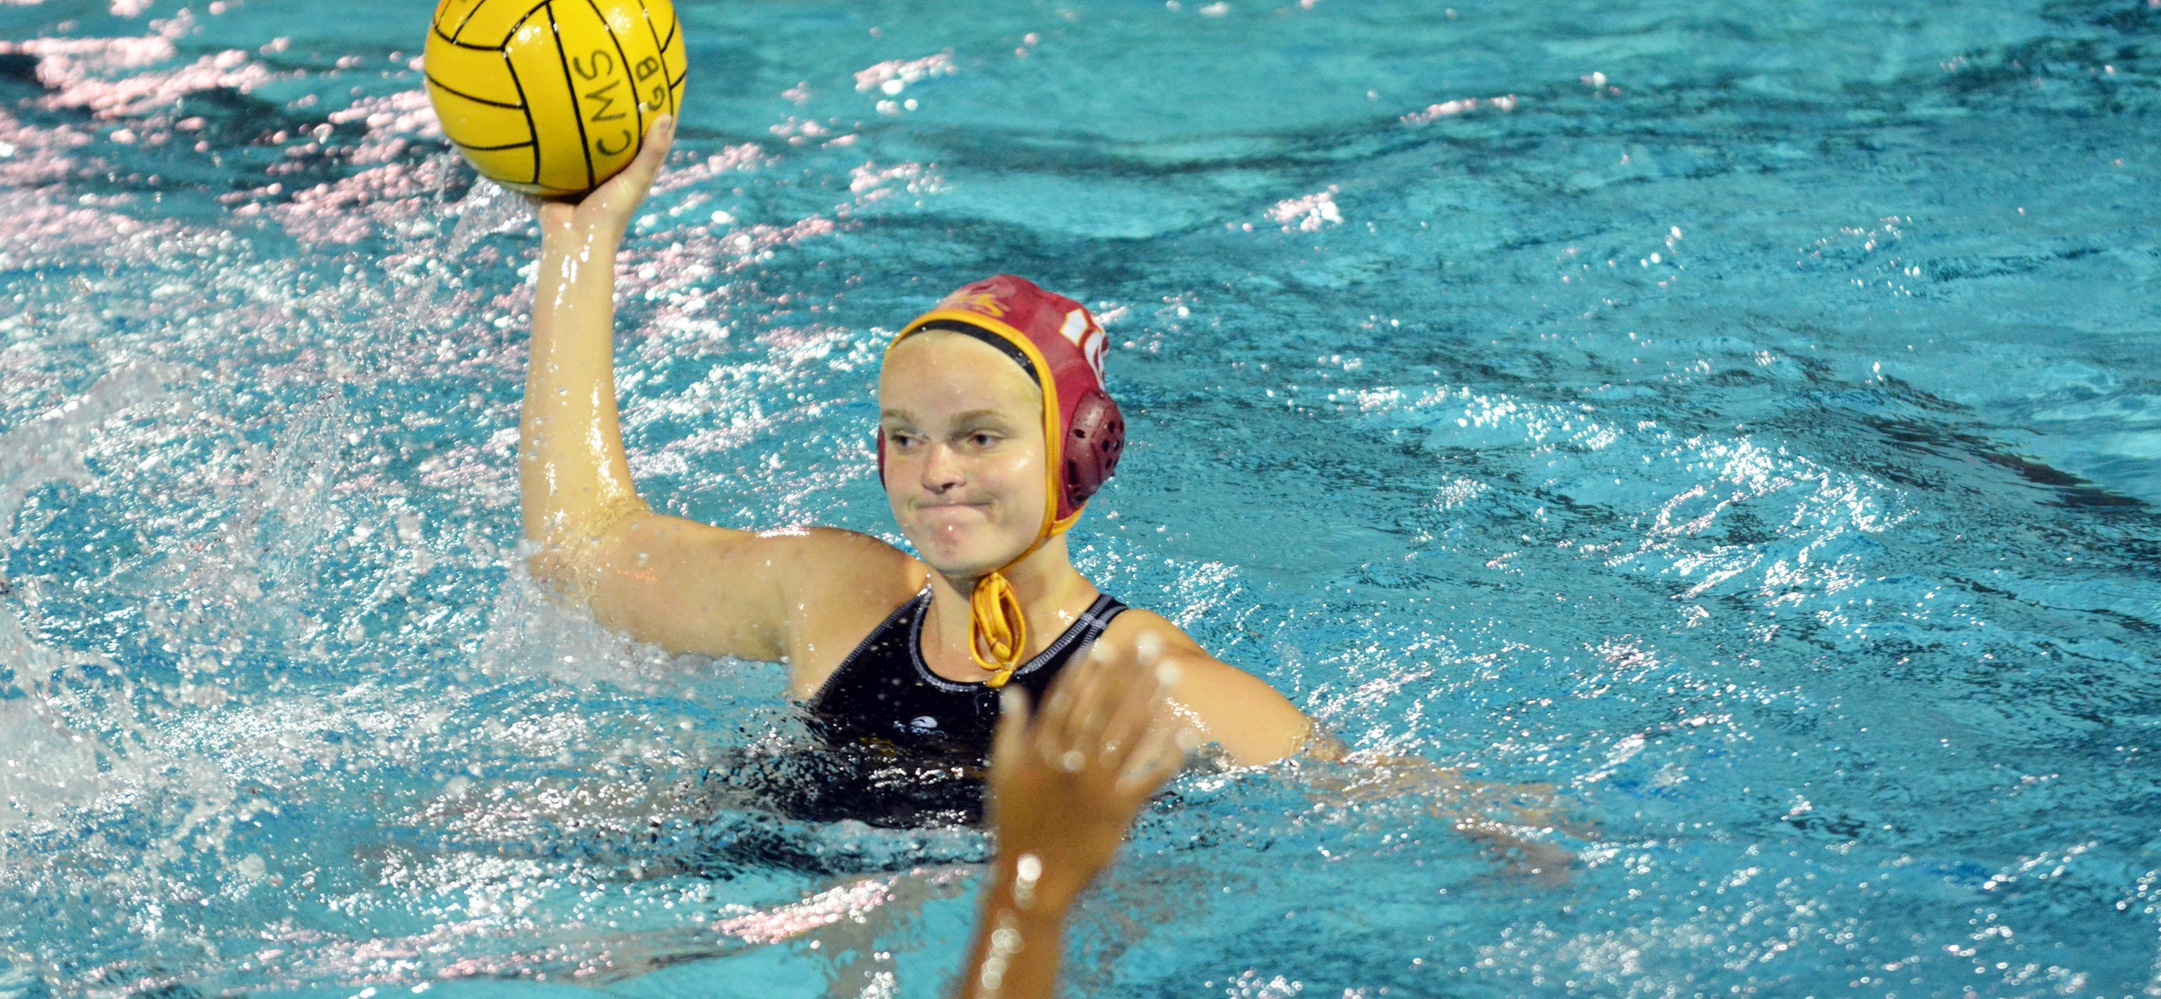 Anna Fry, Jessica Salaz Help CMS Women's Water Polo to Big Road Win over Whittier